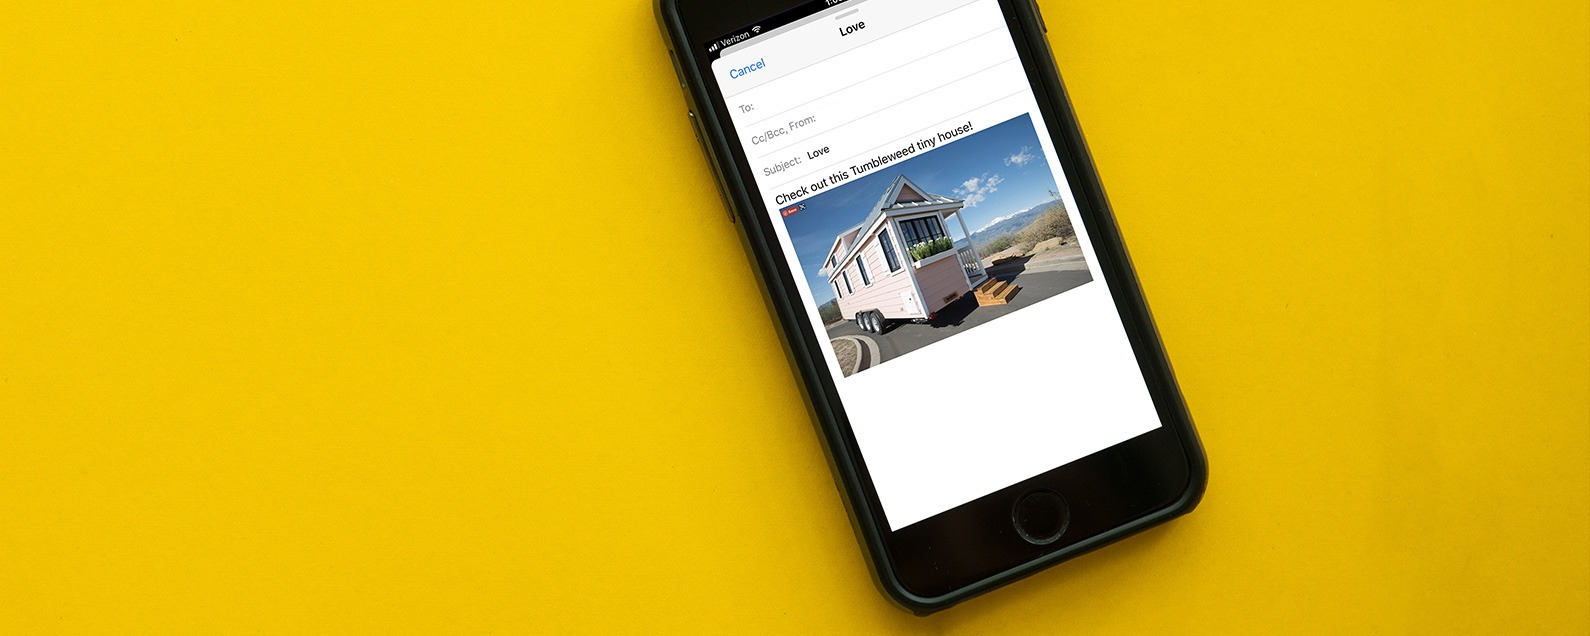 Add Attachment To Iphone Email how to add attachments in mail on the iphone | iphonelife